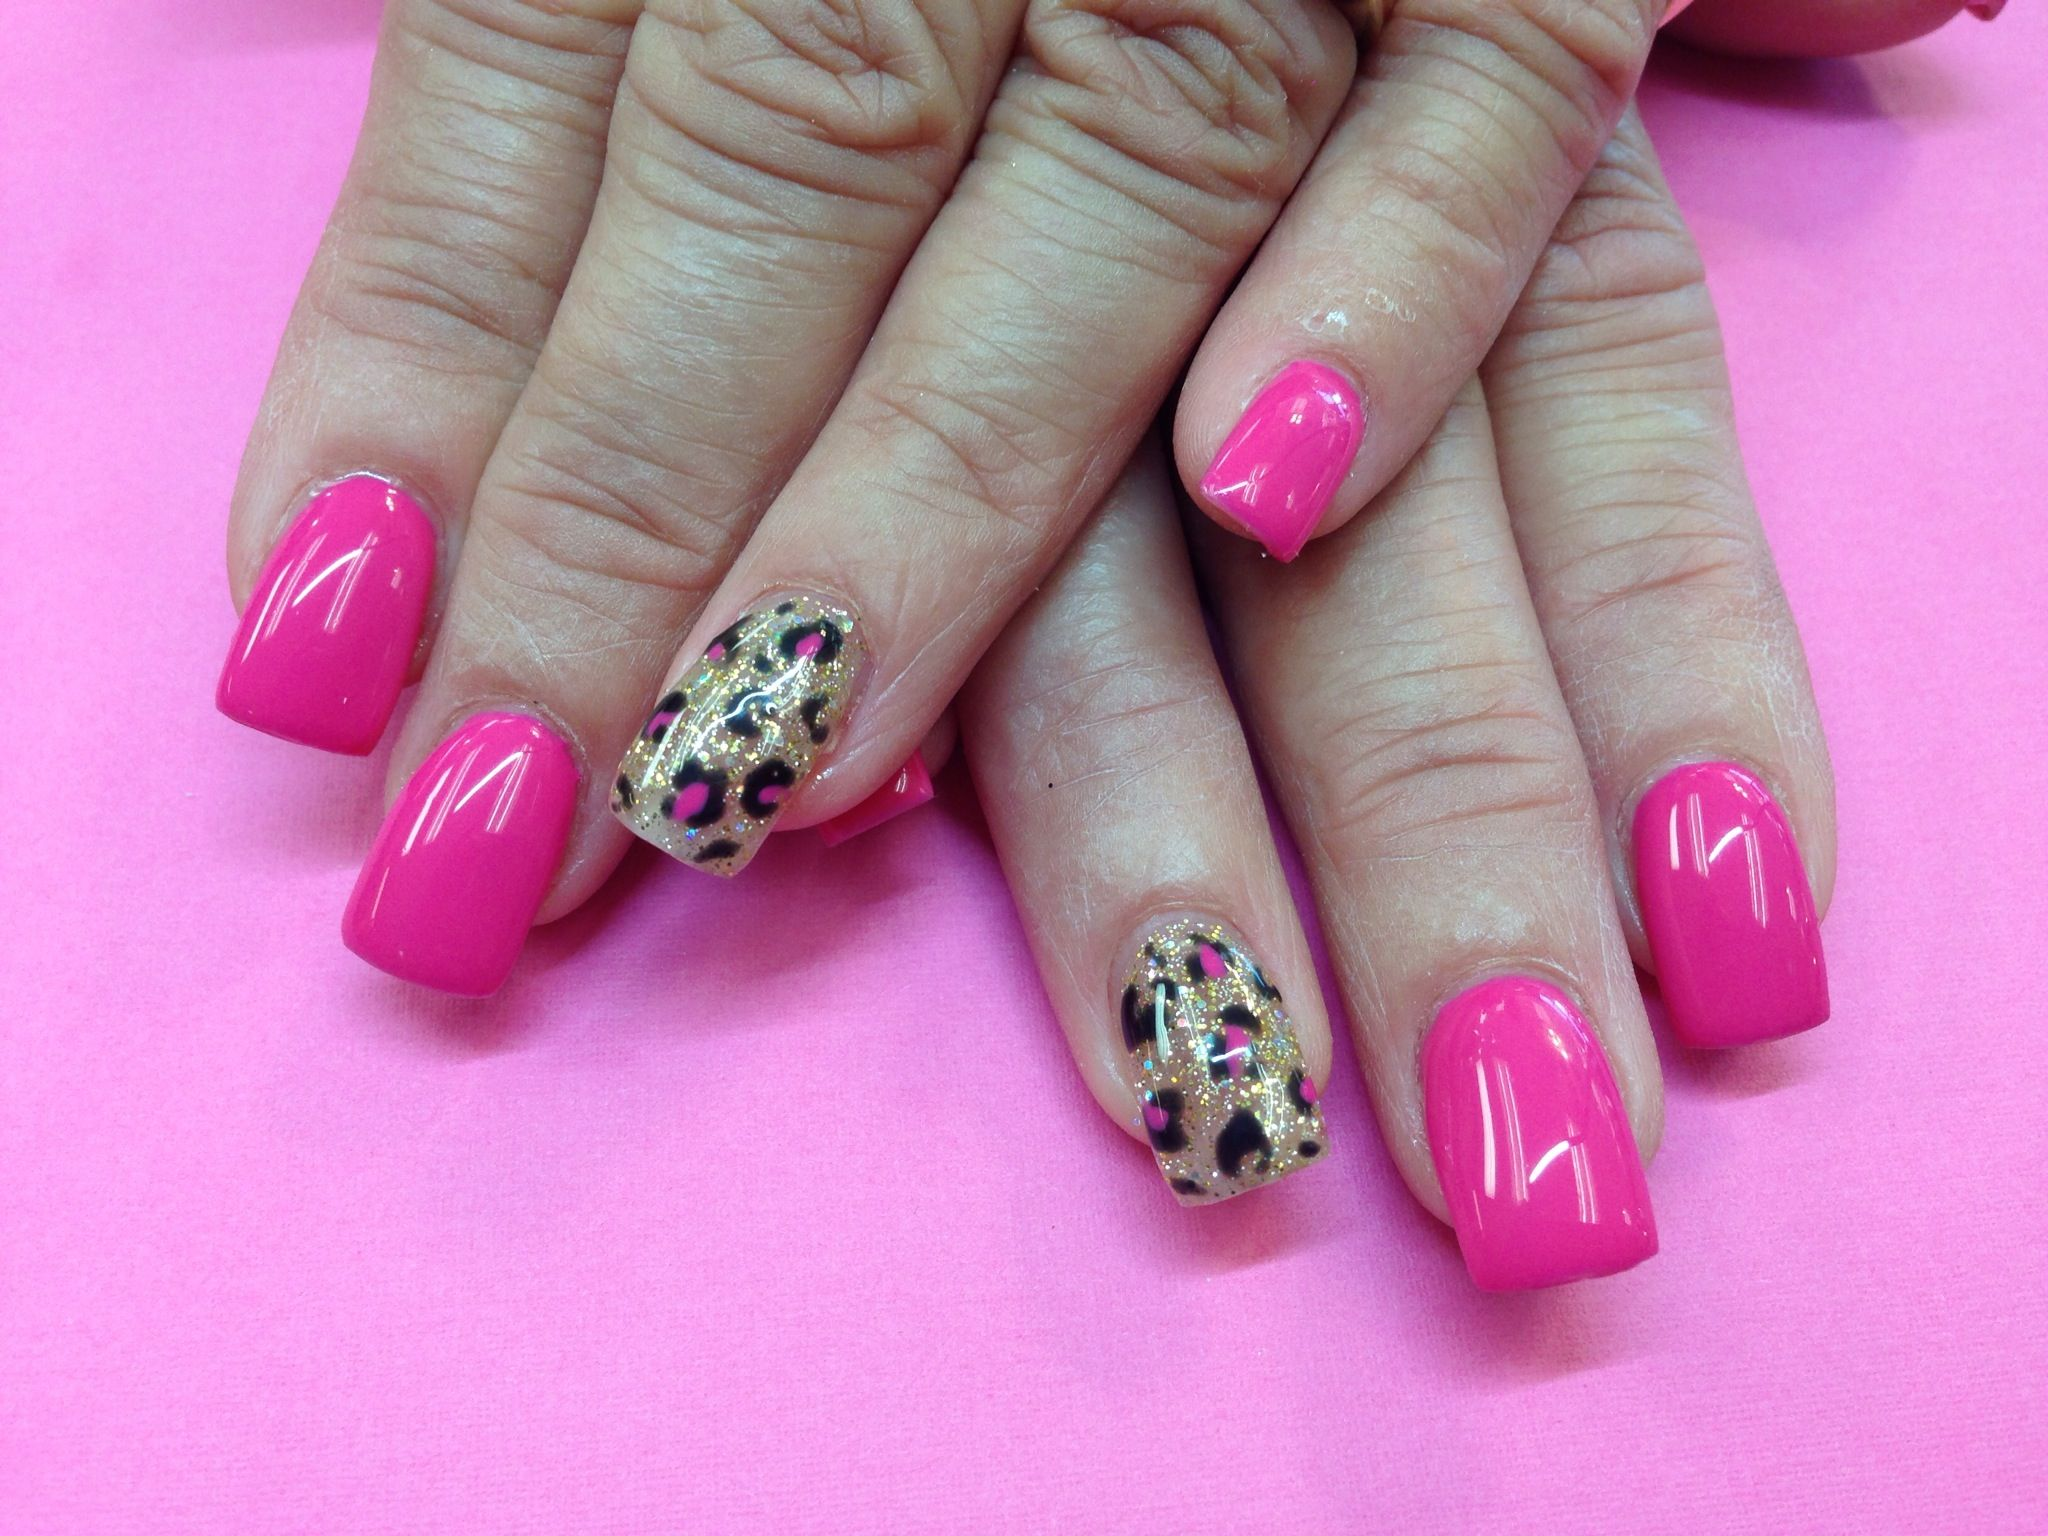 Luxio Gel Color in Devine/animal print | Nails by Sheri/Sculpture ...